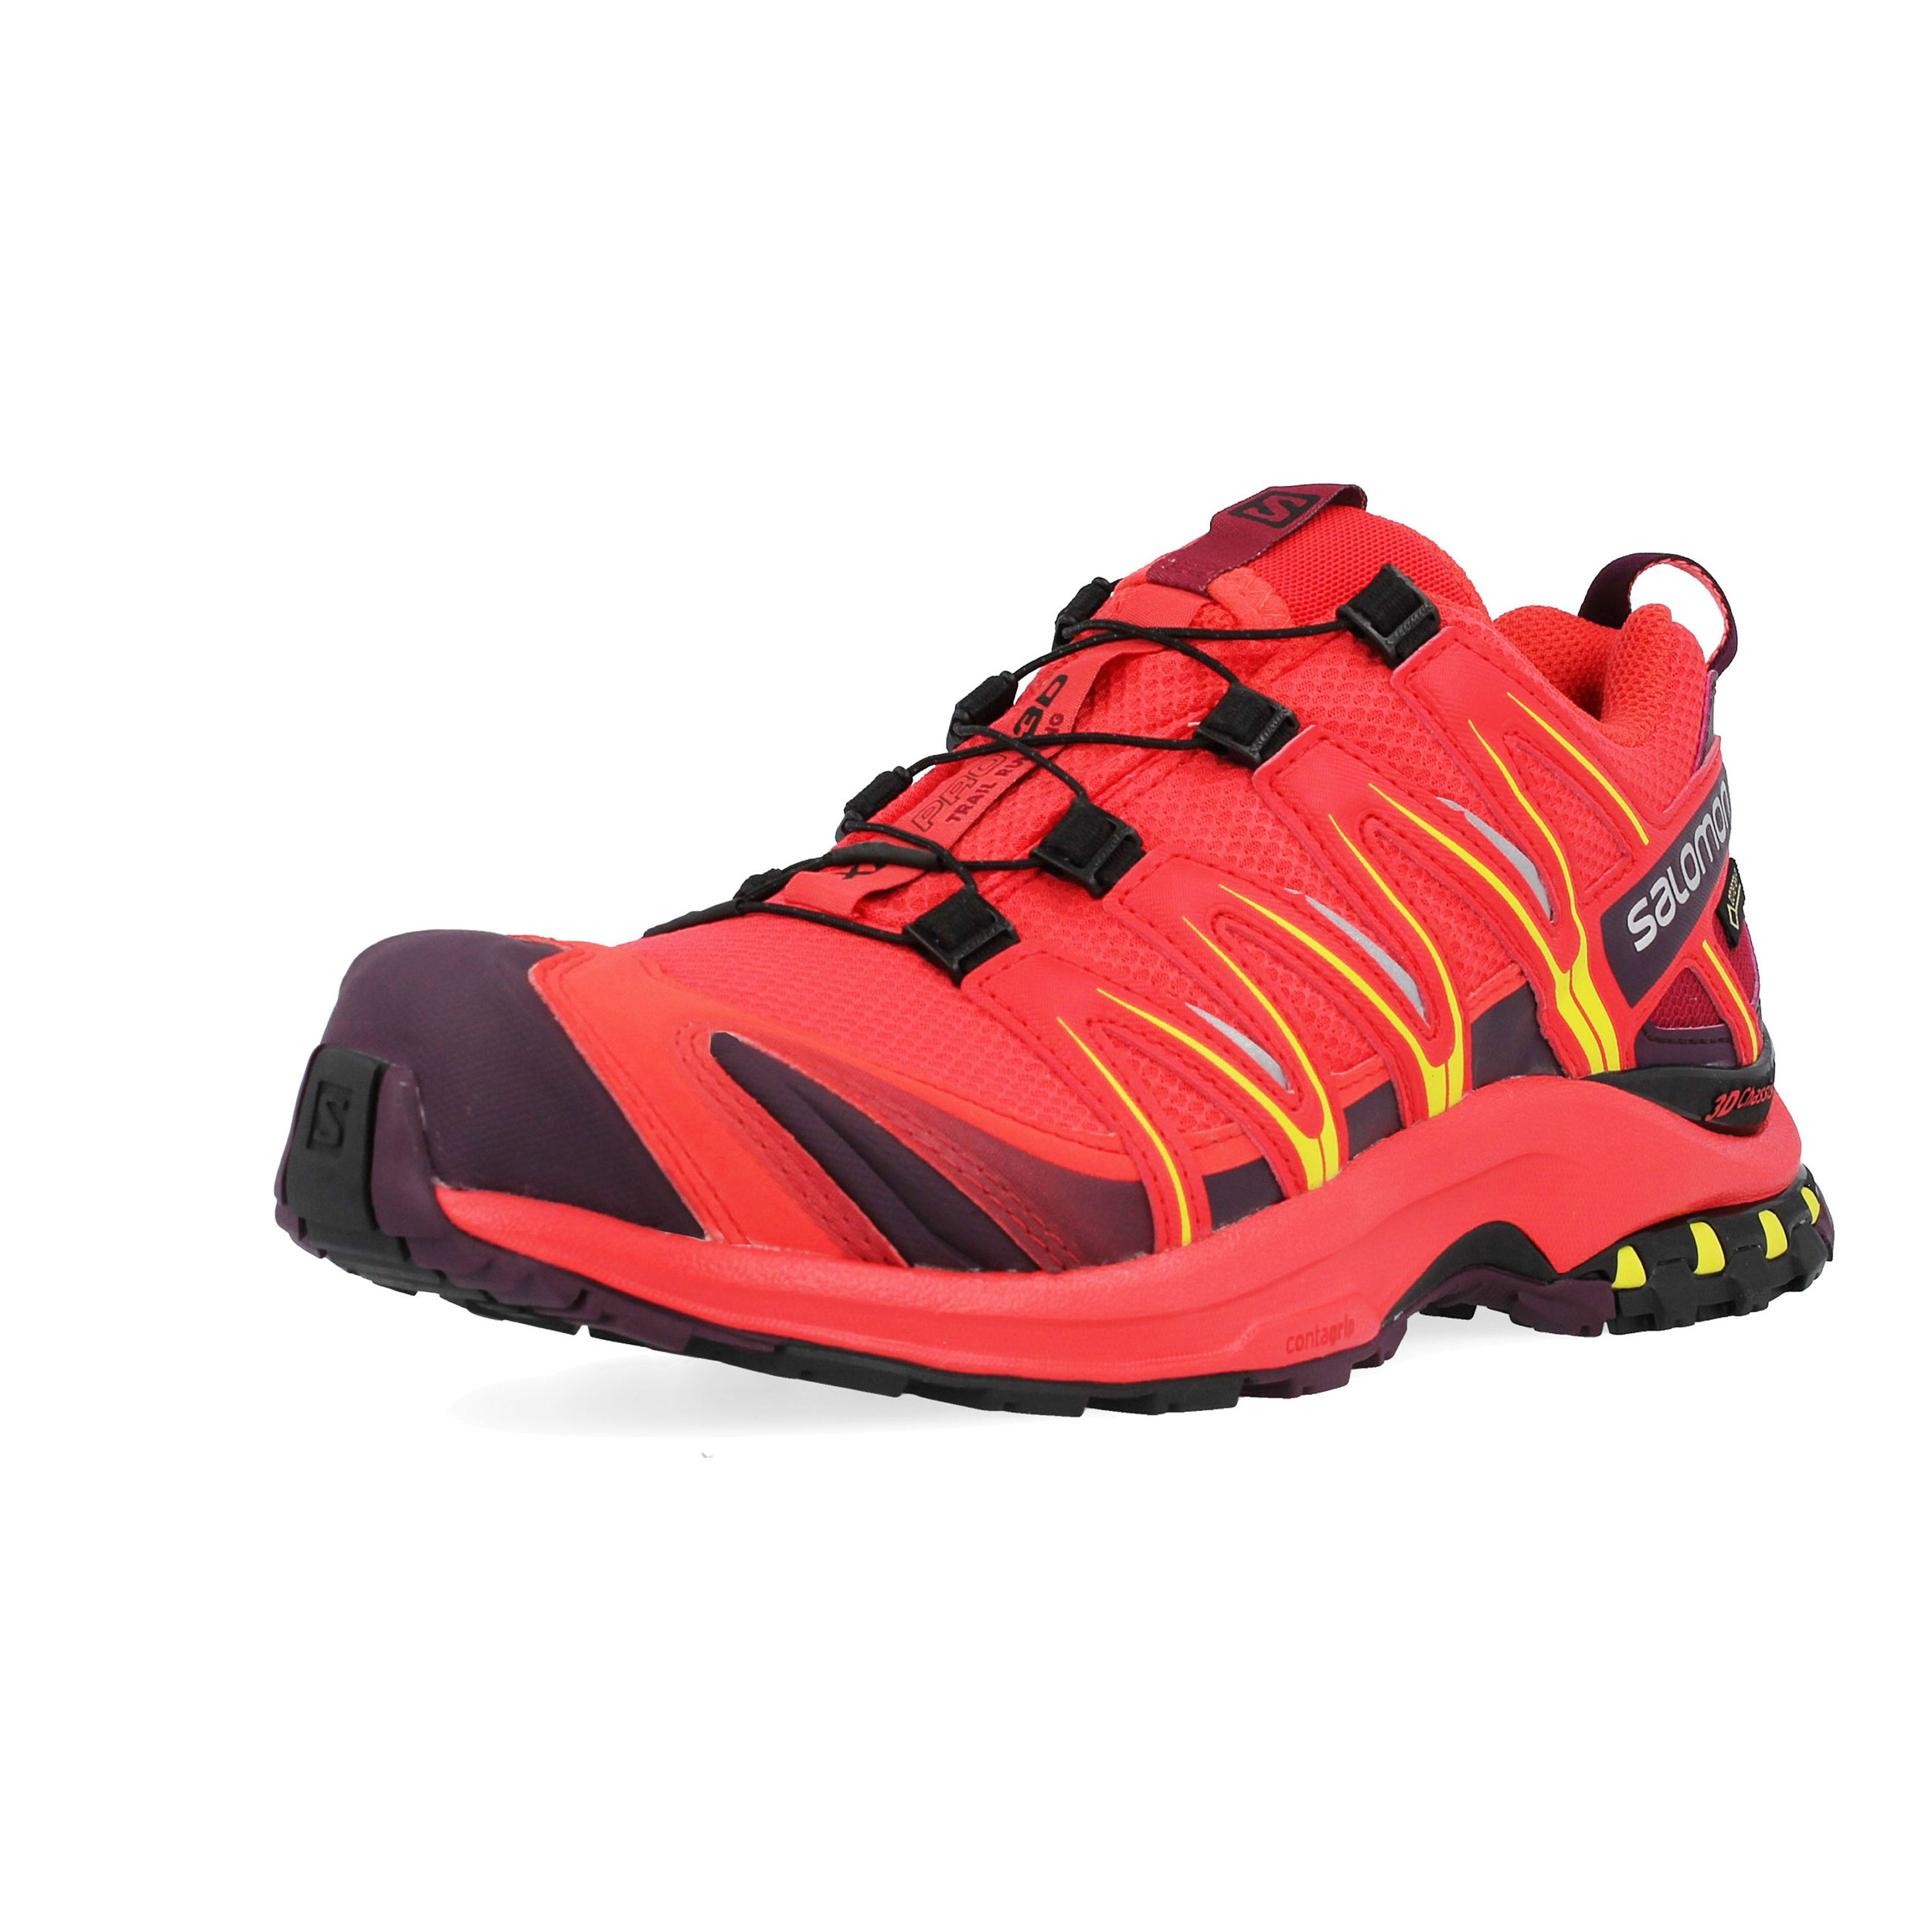 69299f226a11 Details about Salomon Womens XA Pro 3D GTX Trail Running Shoes Trainers Sneakers  Red Sports